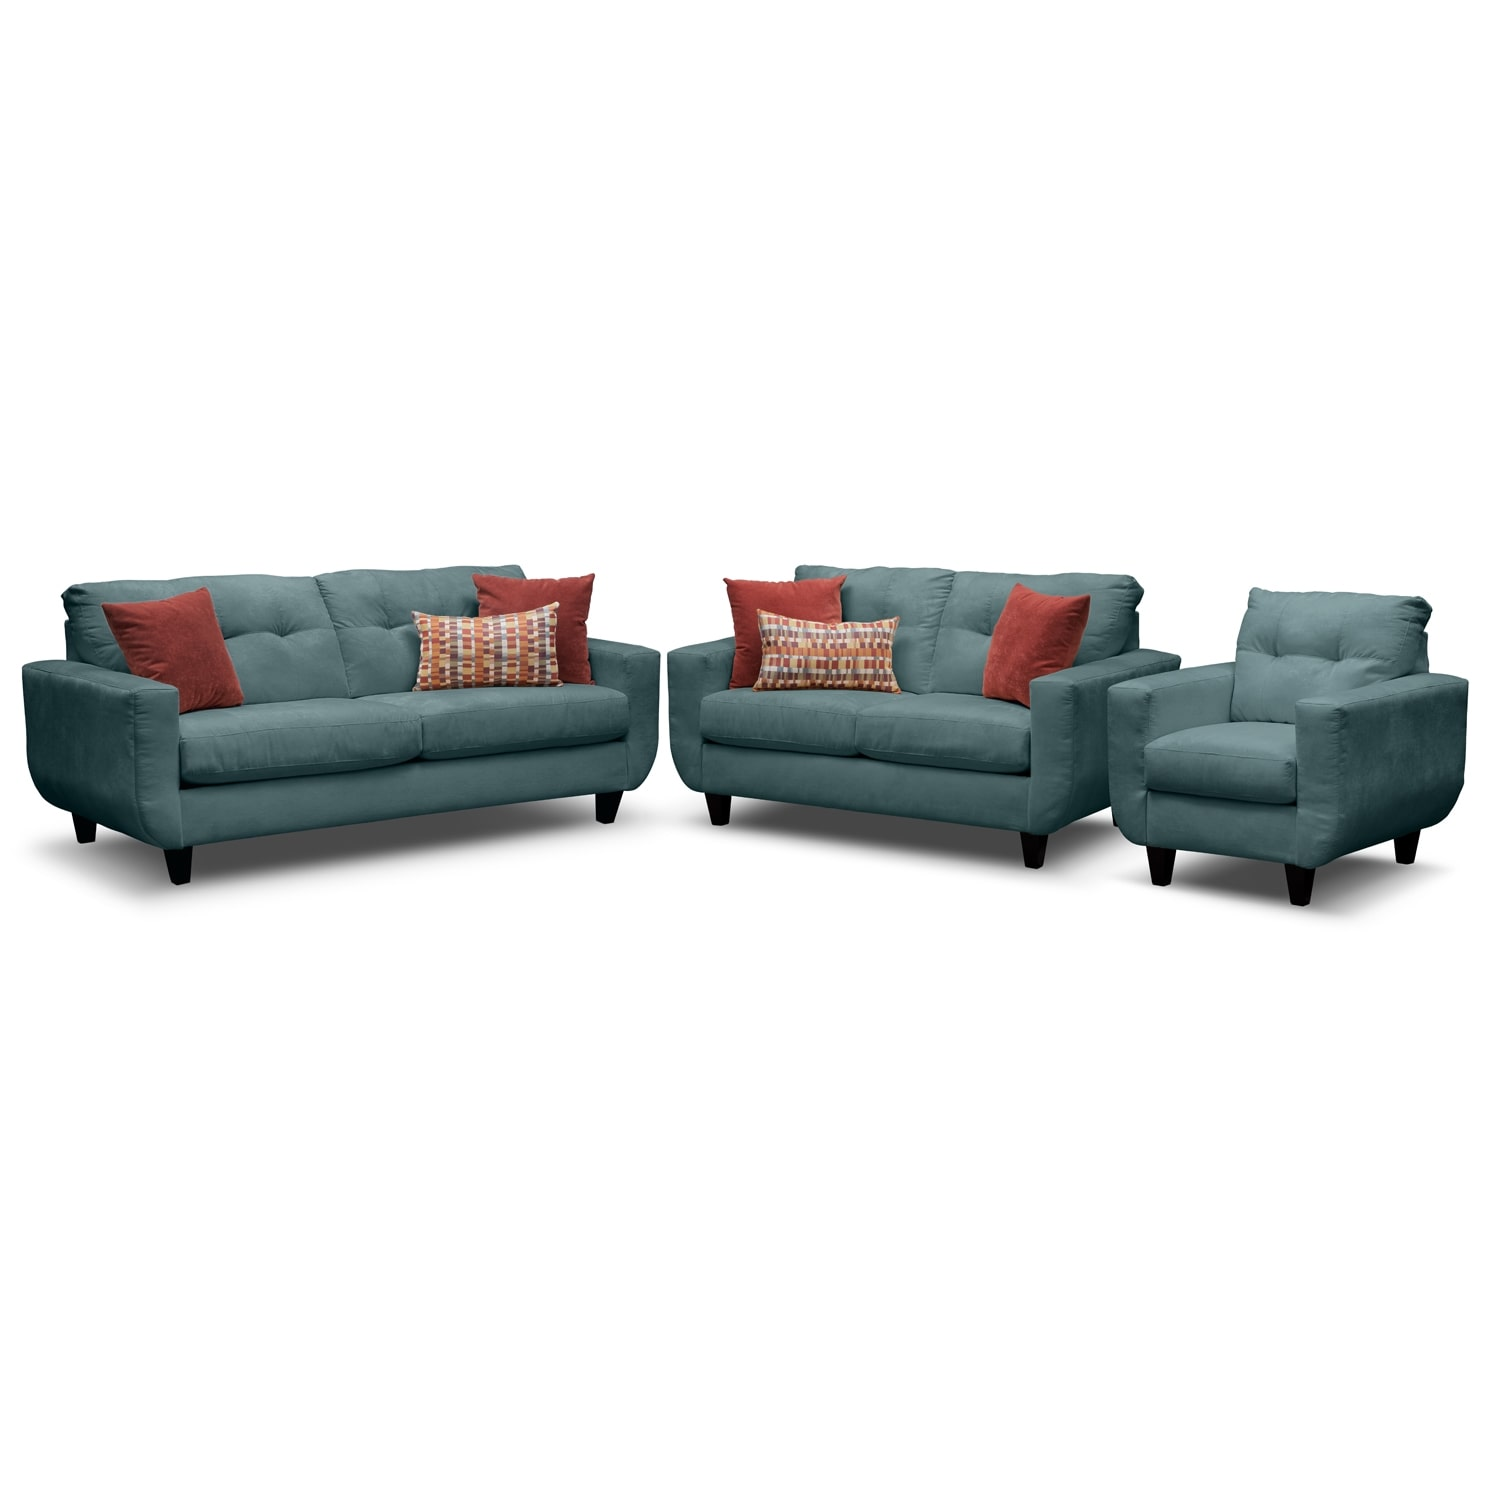 Living Room Furniture - West Village Sofa, Loveseat and Chair Set - Blue